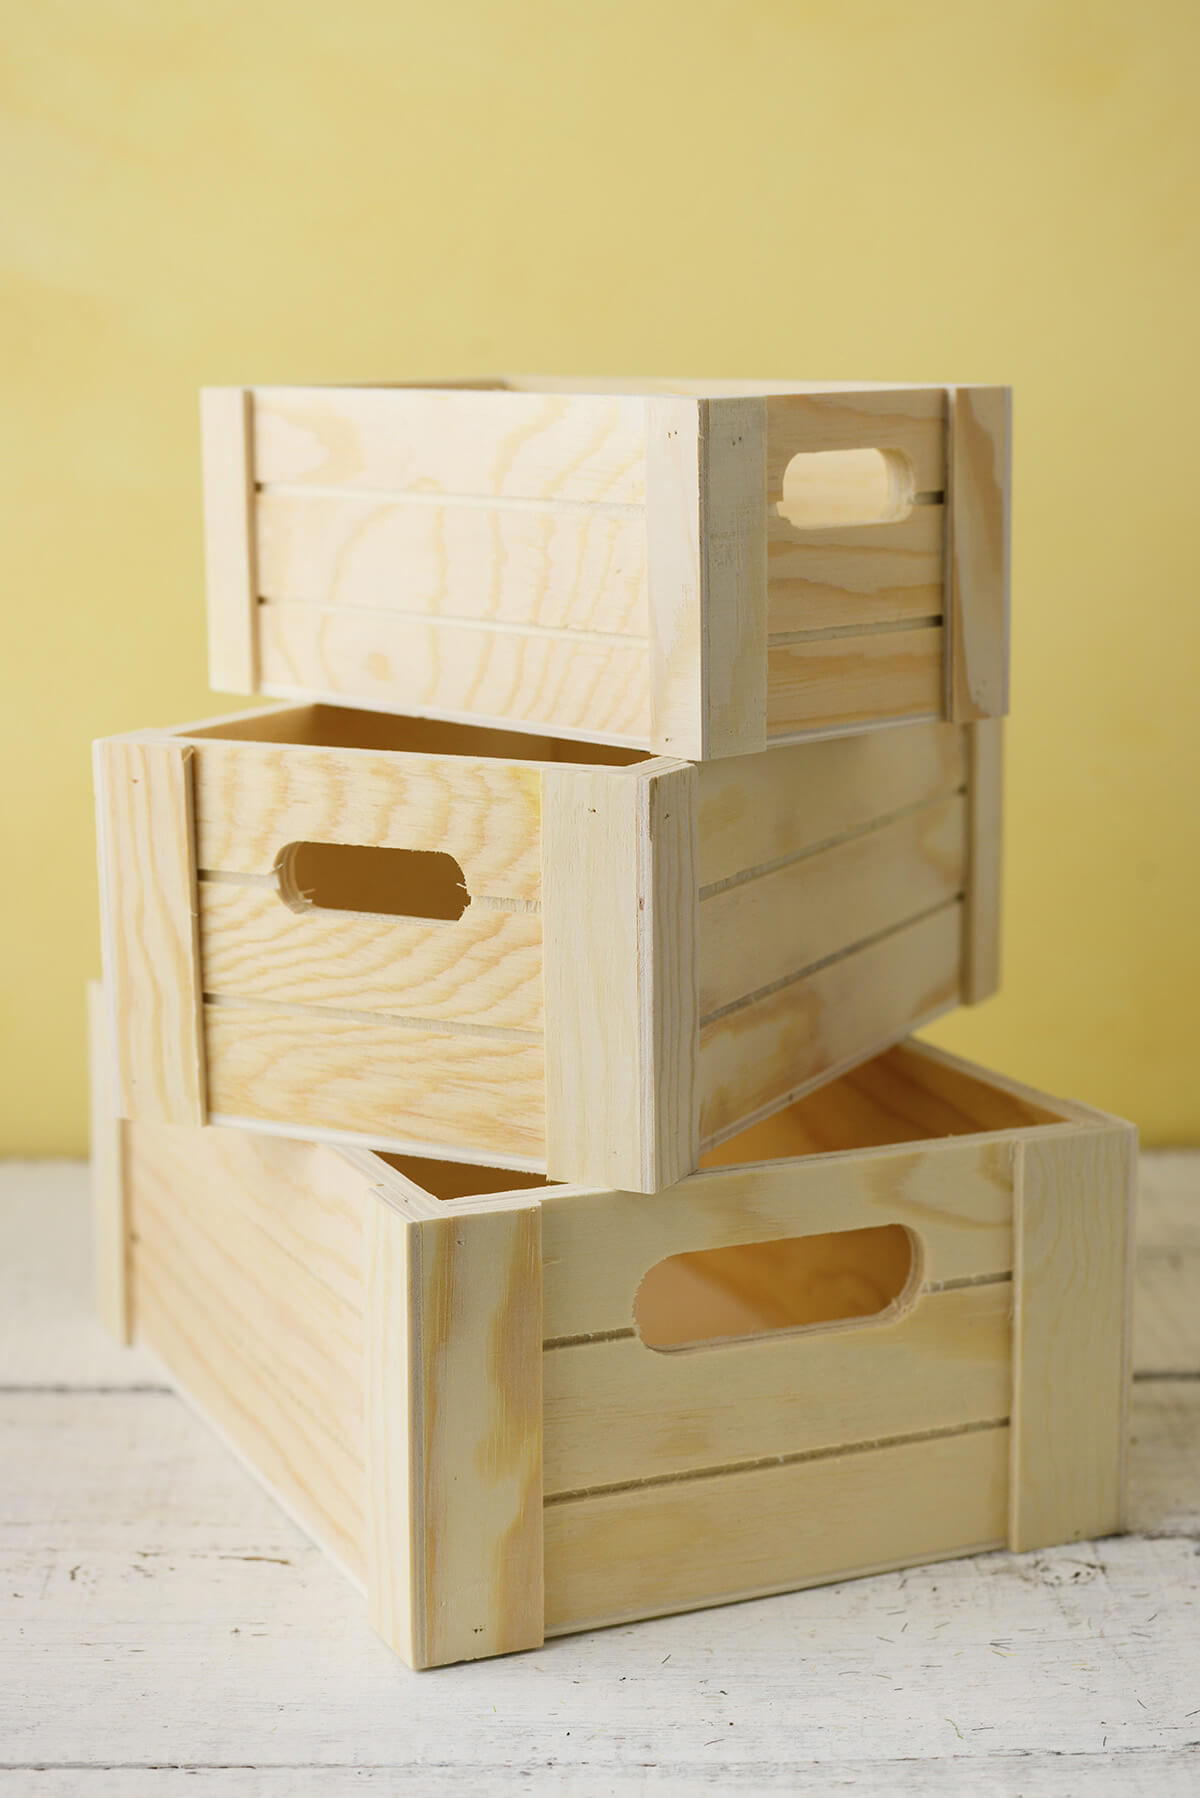 Wooden Crate With Handles Crates With Handles